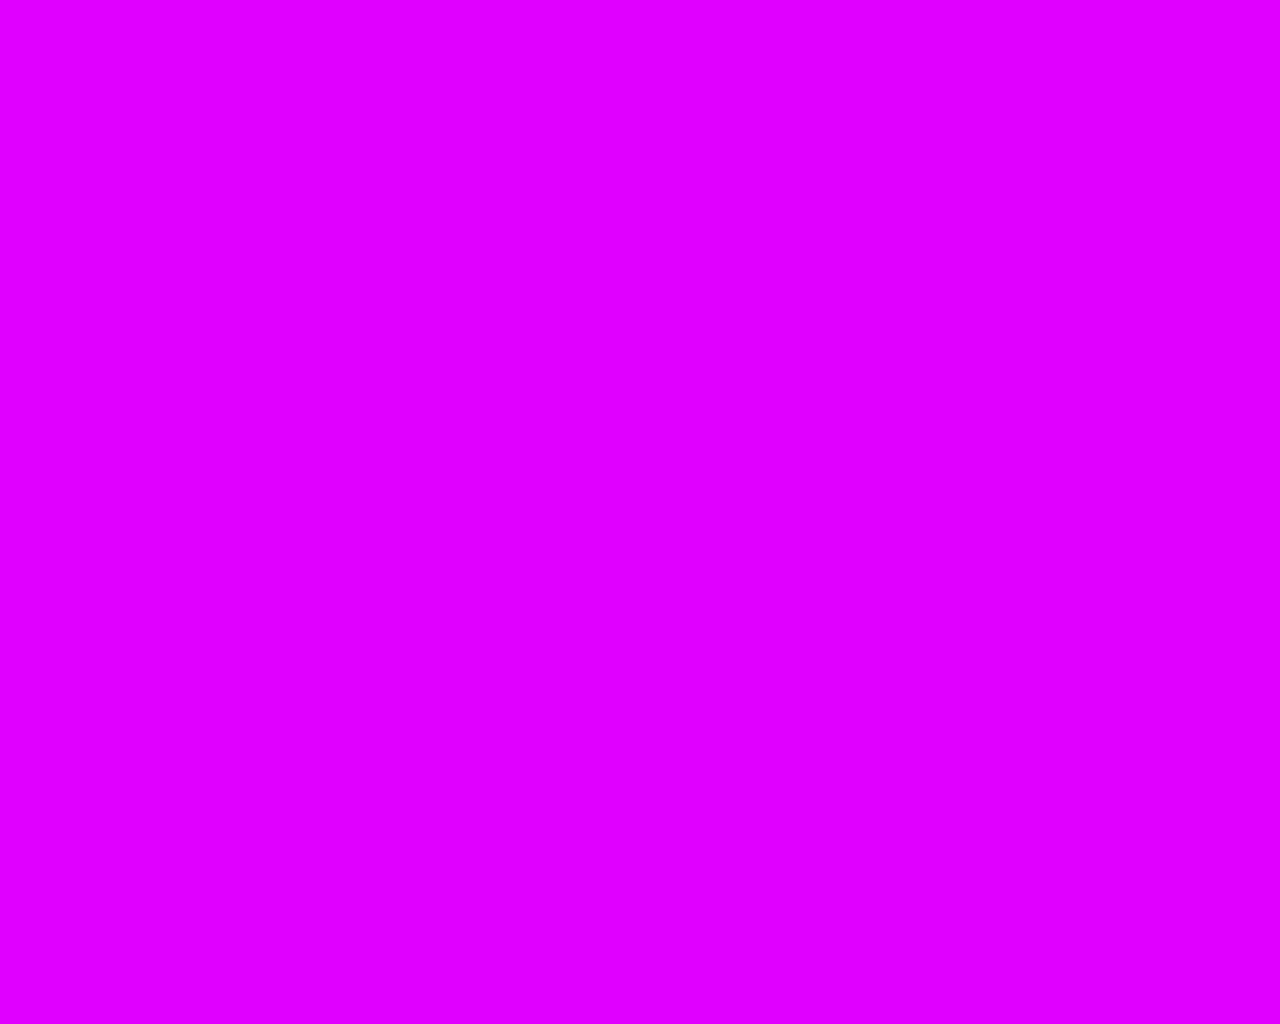 1280x1024 Phlox Solid Color Background